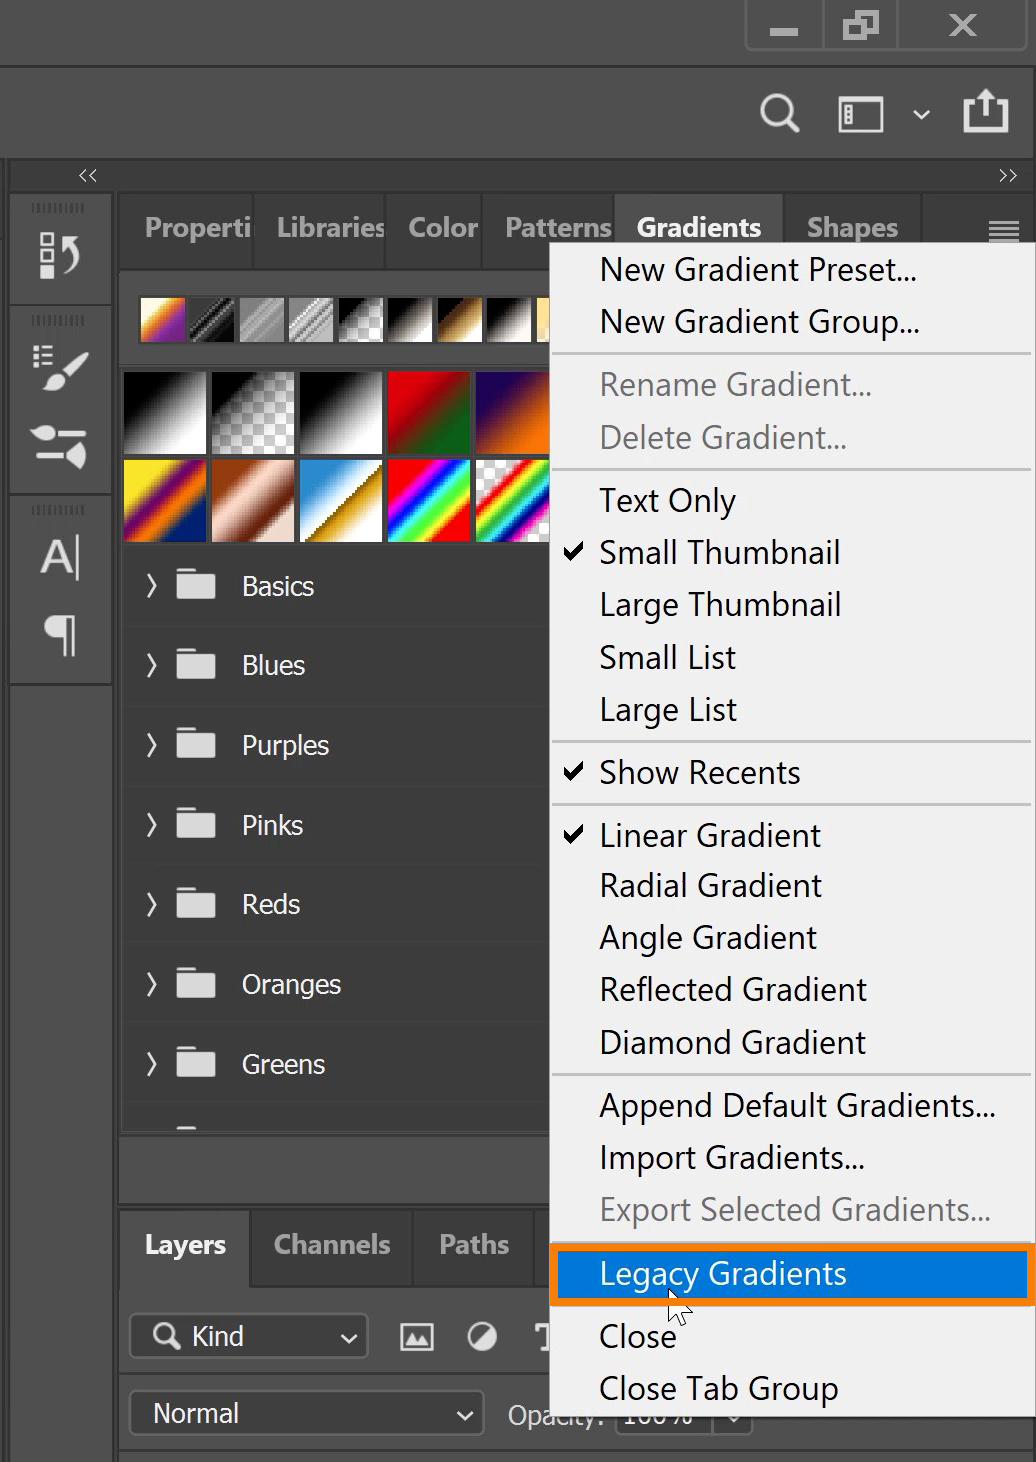 Click on Legacy Gradients and More.